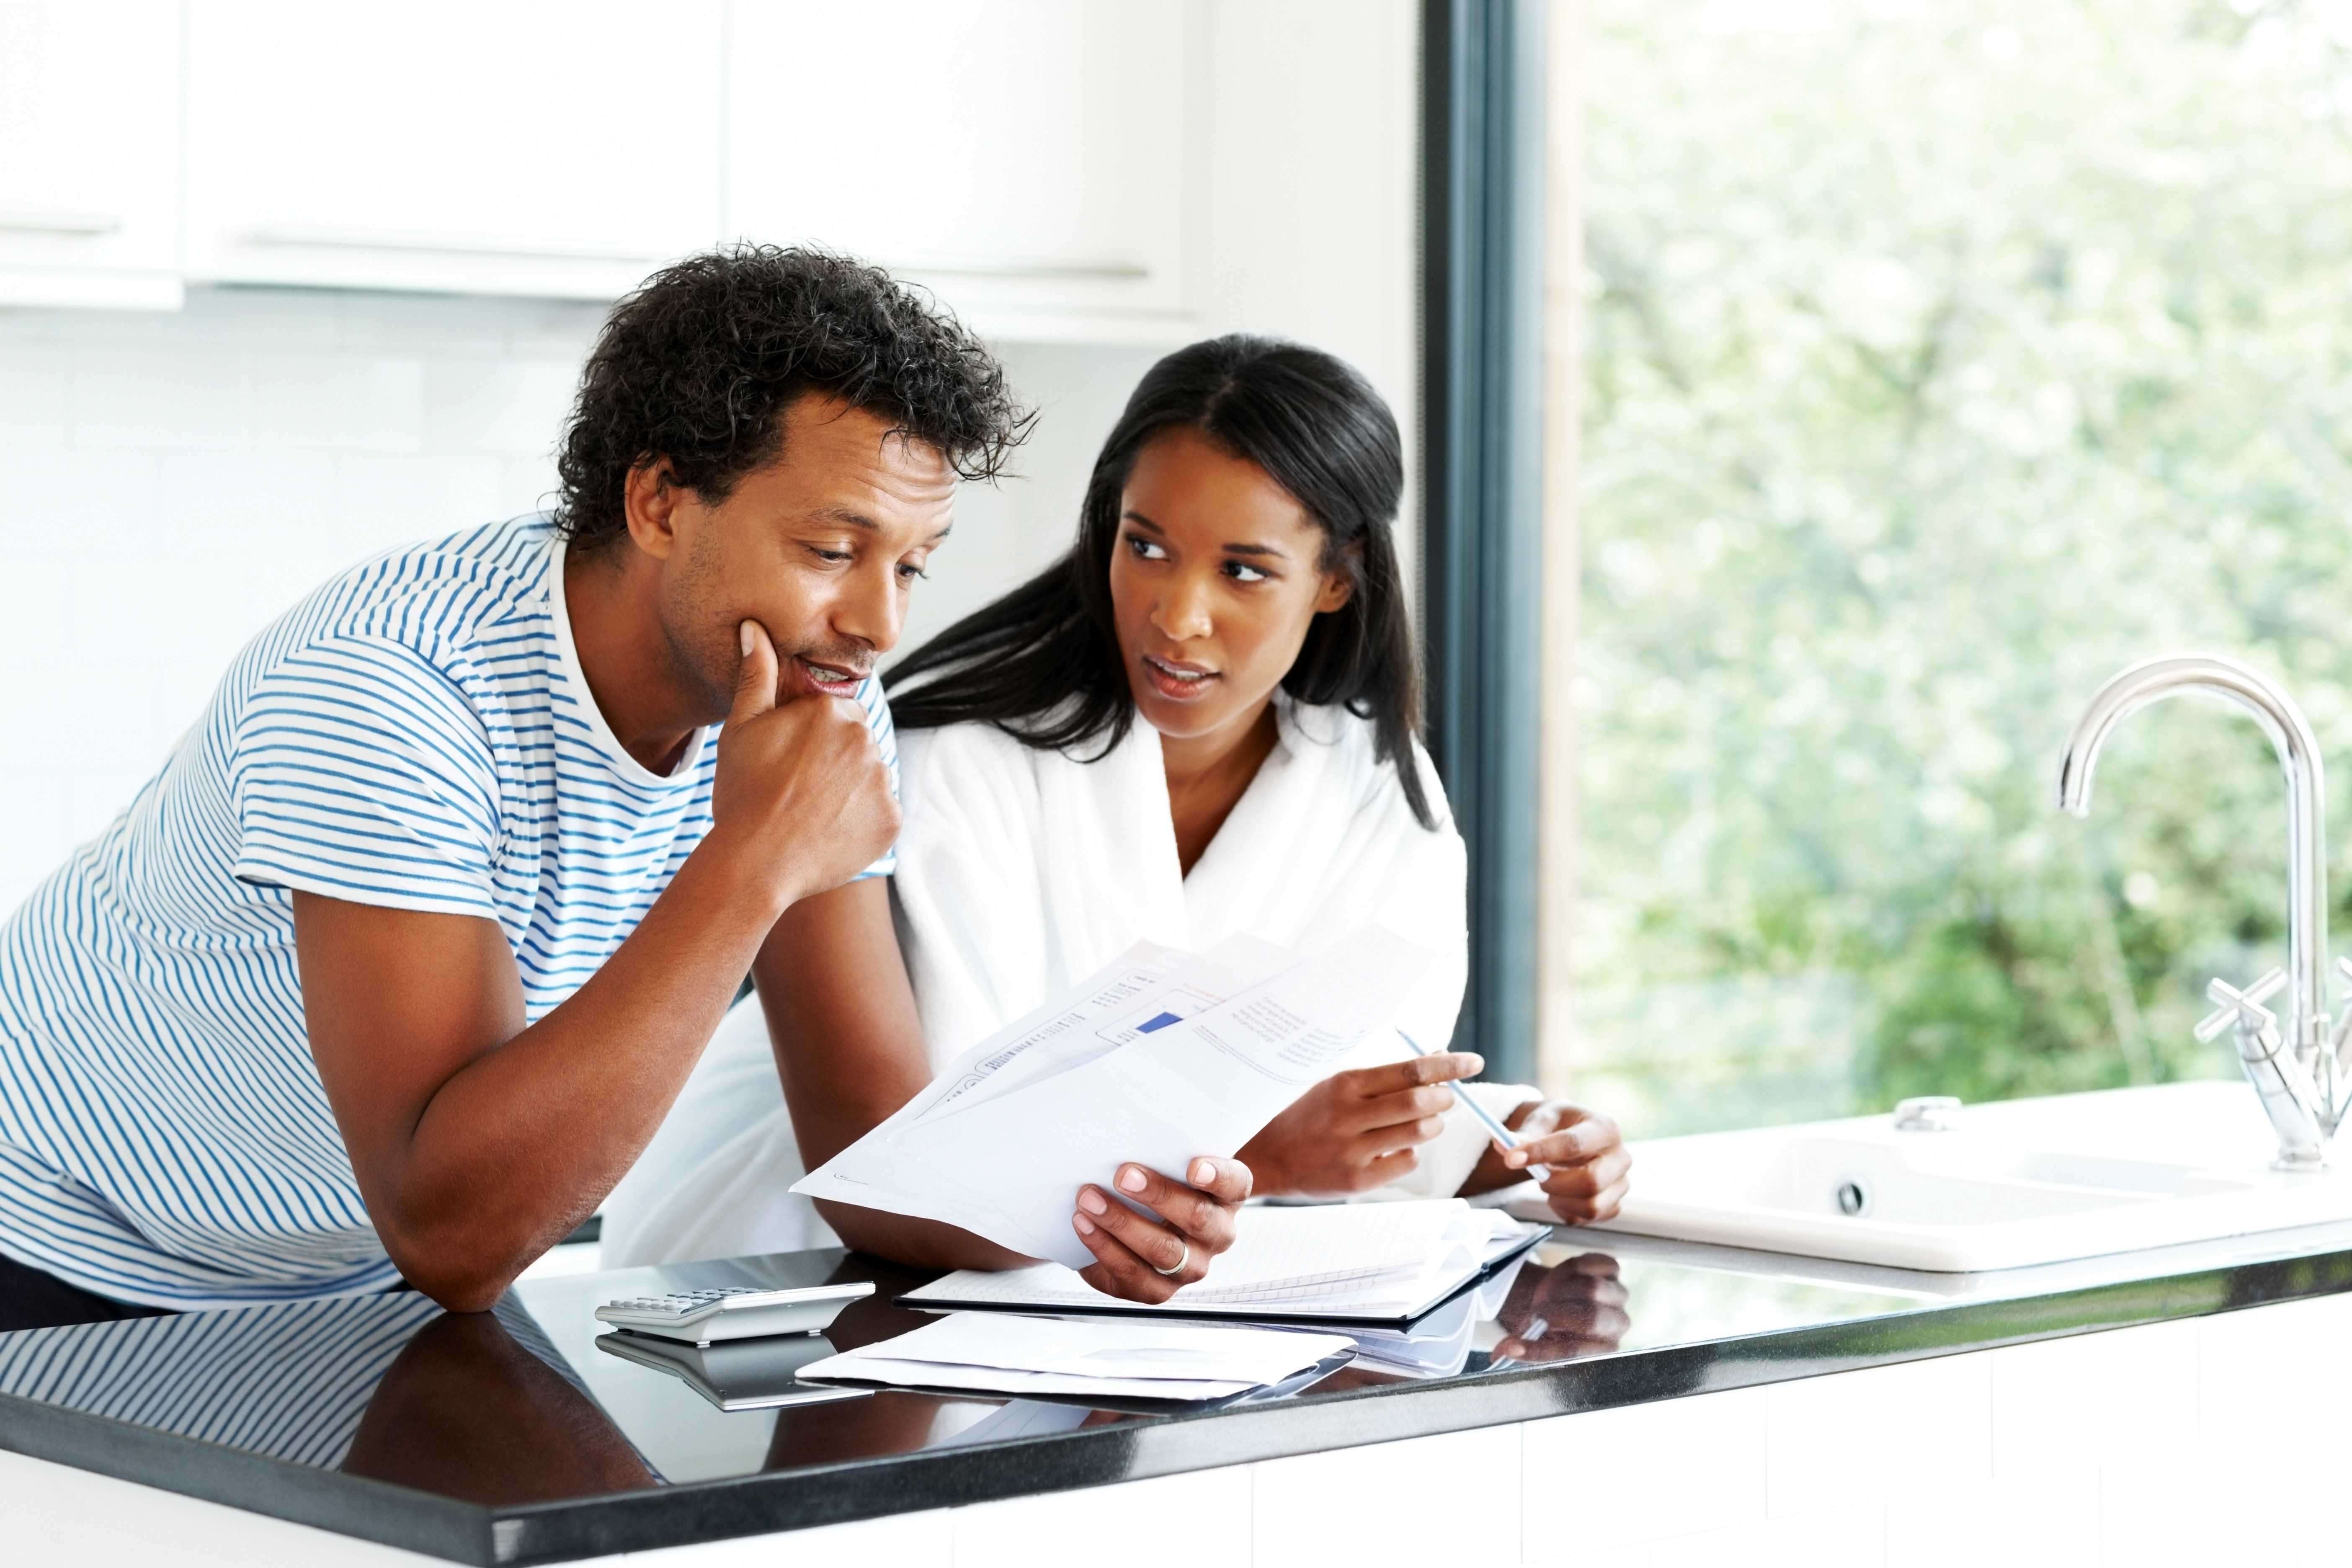 6 Tips For Managing Money In A Relationship